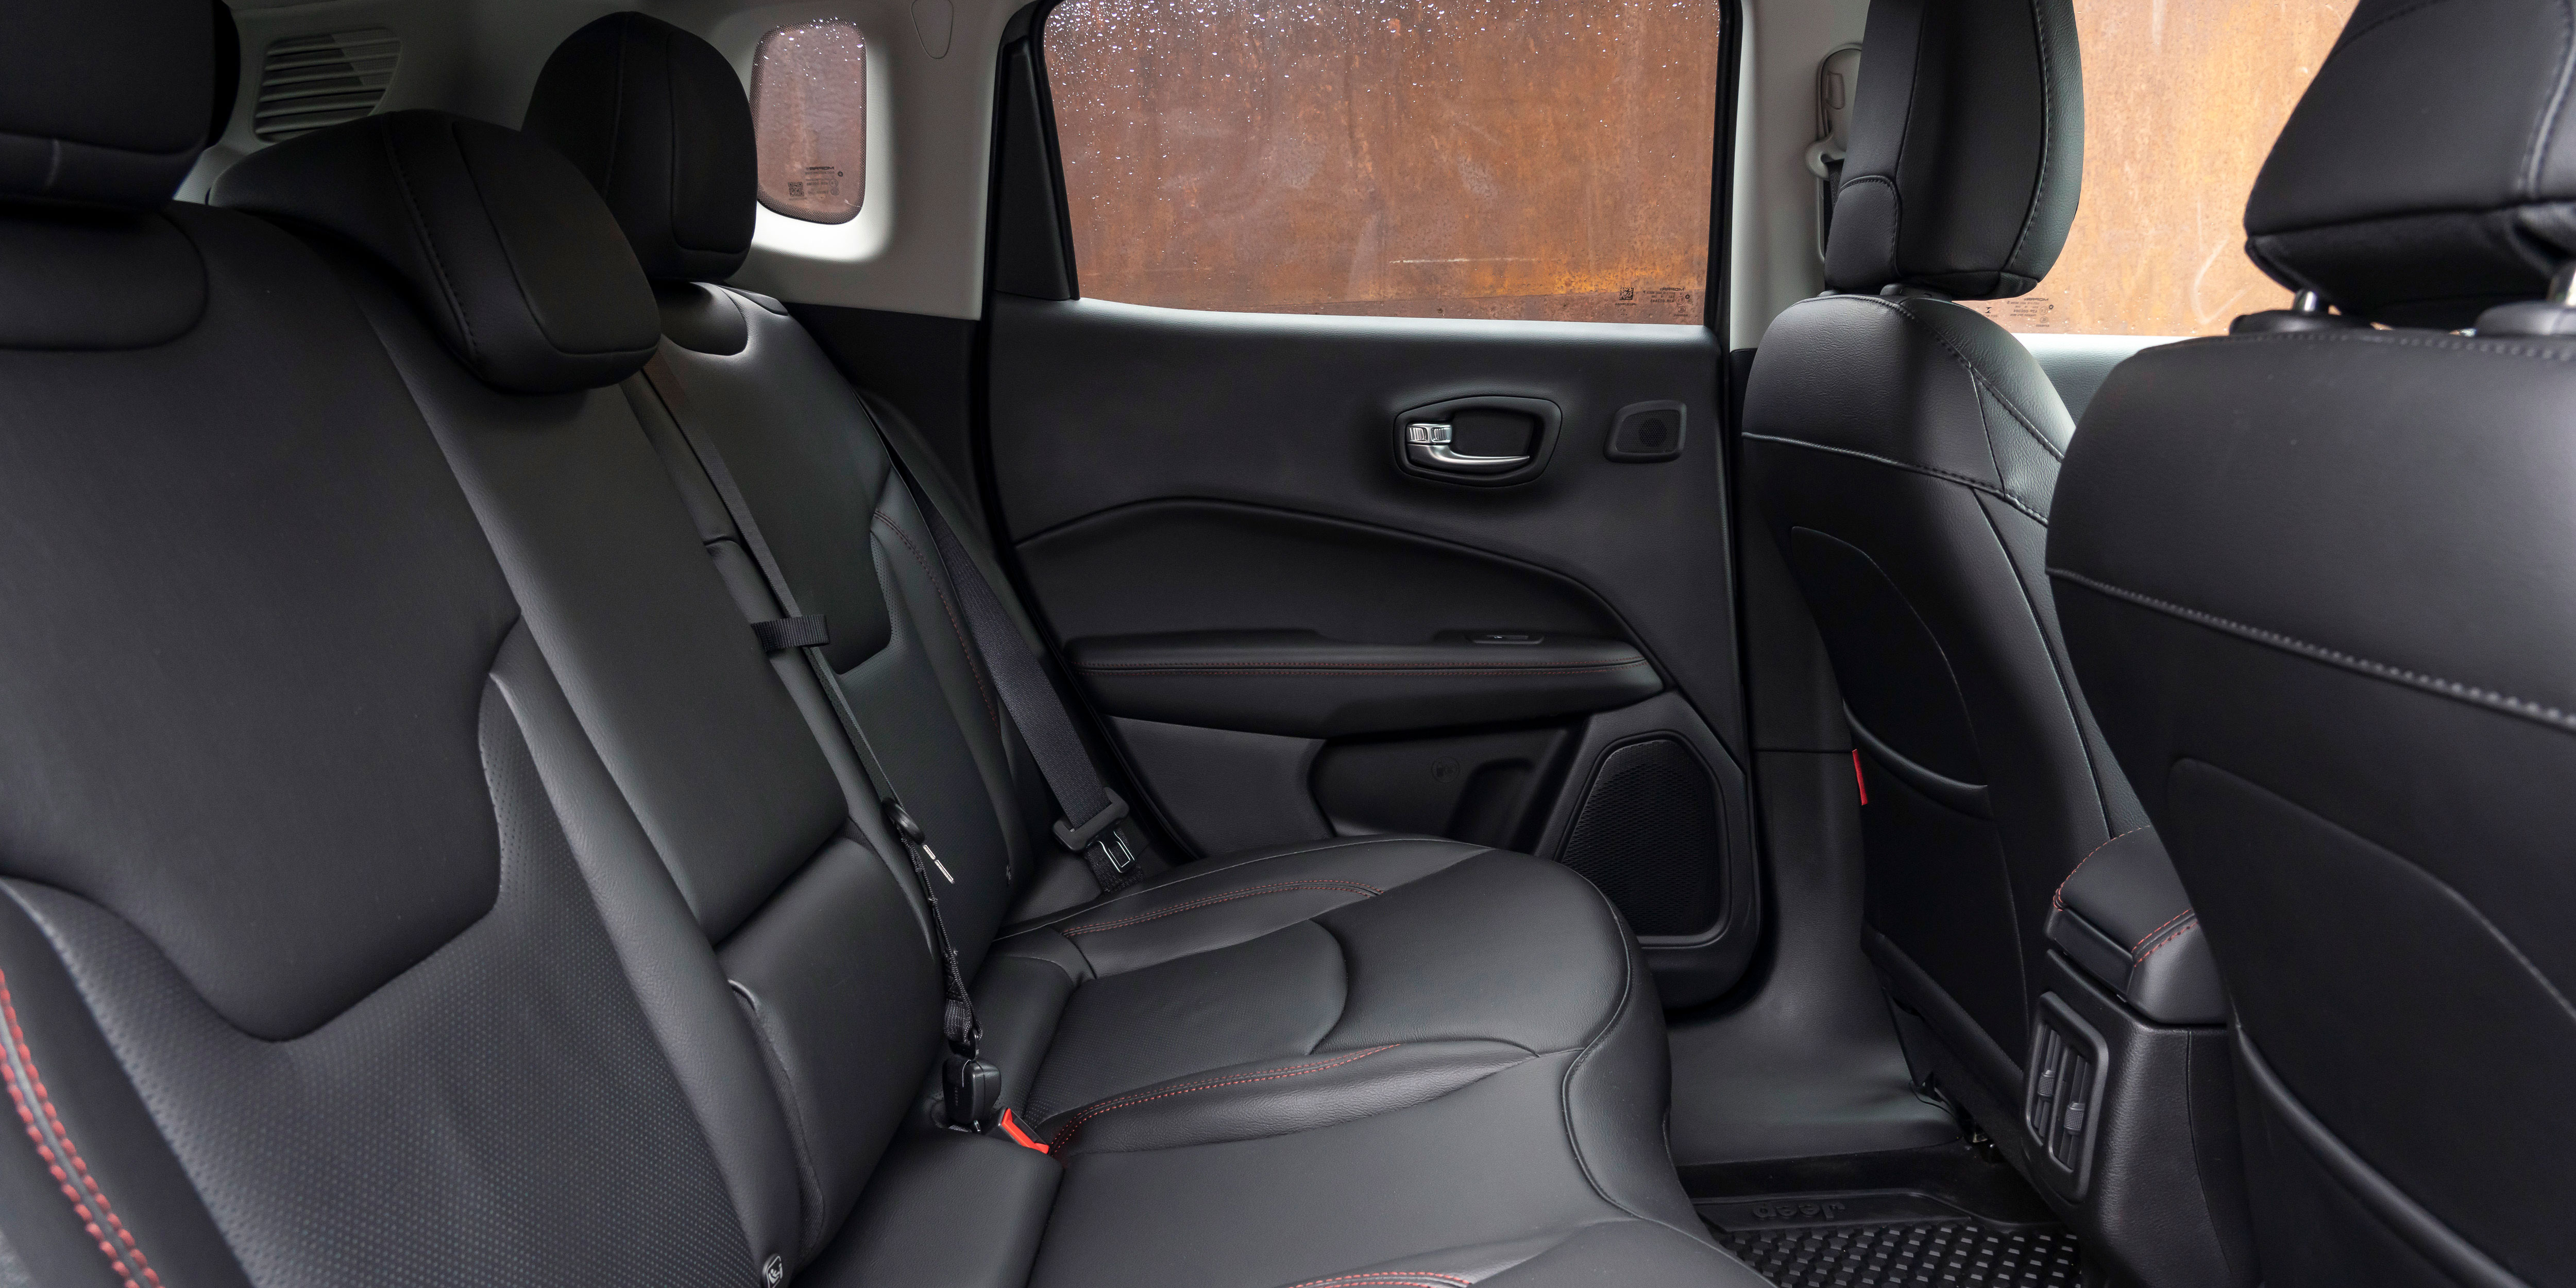 Land Rover Models >> Jeep Compass Interior & Infotainment | carwow